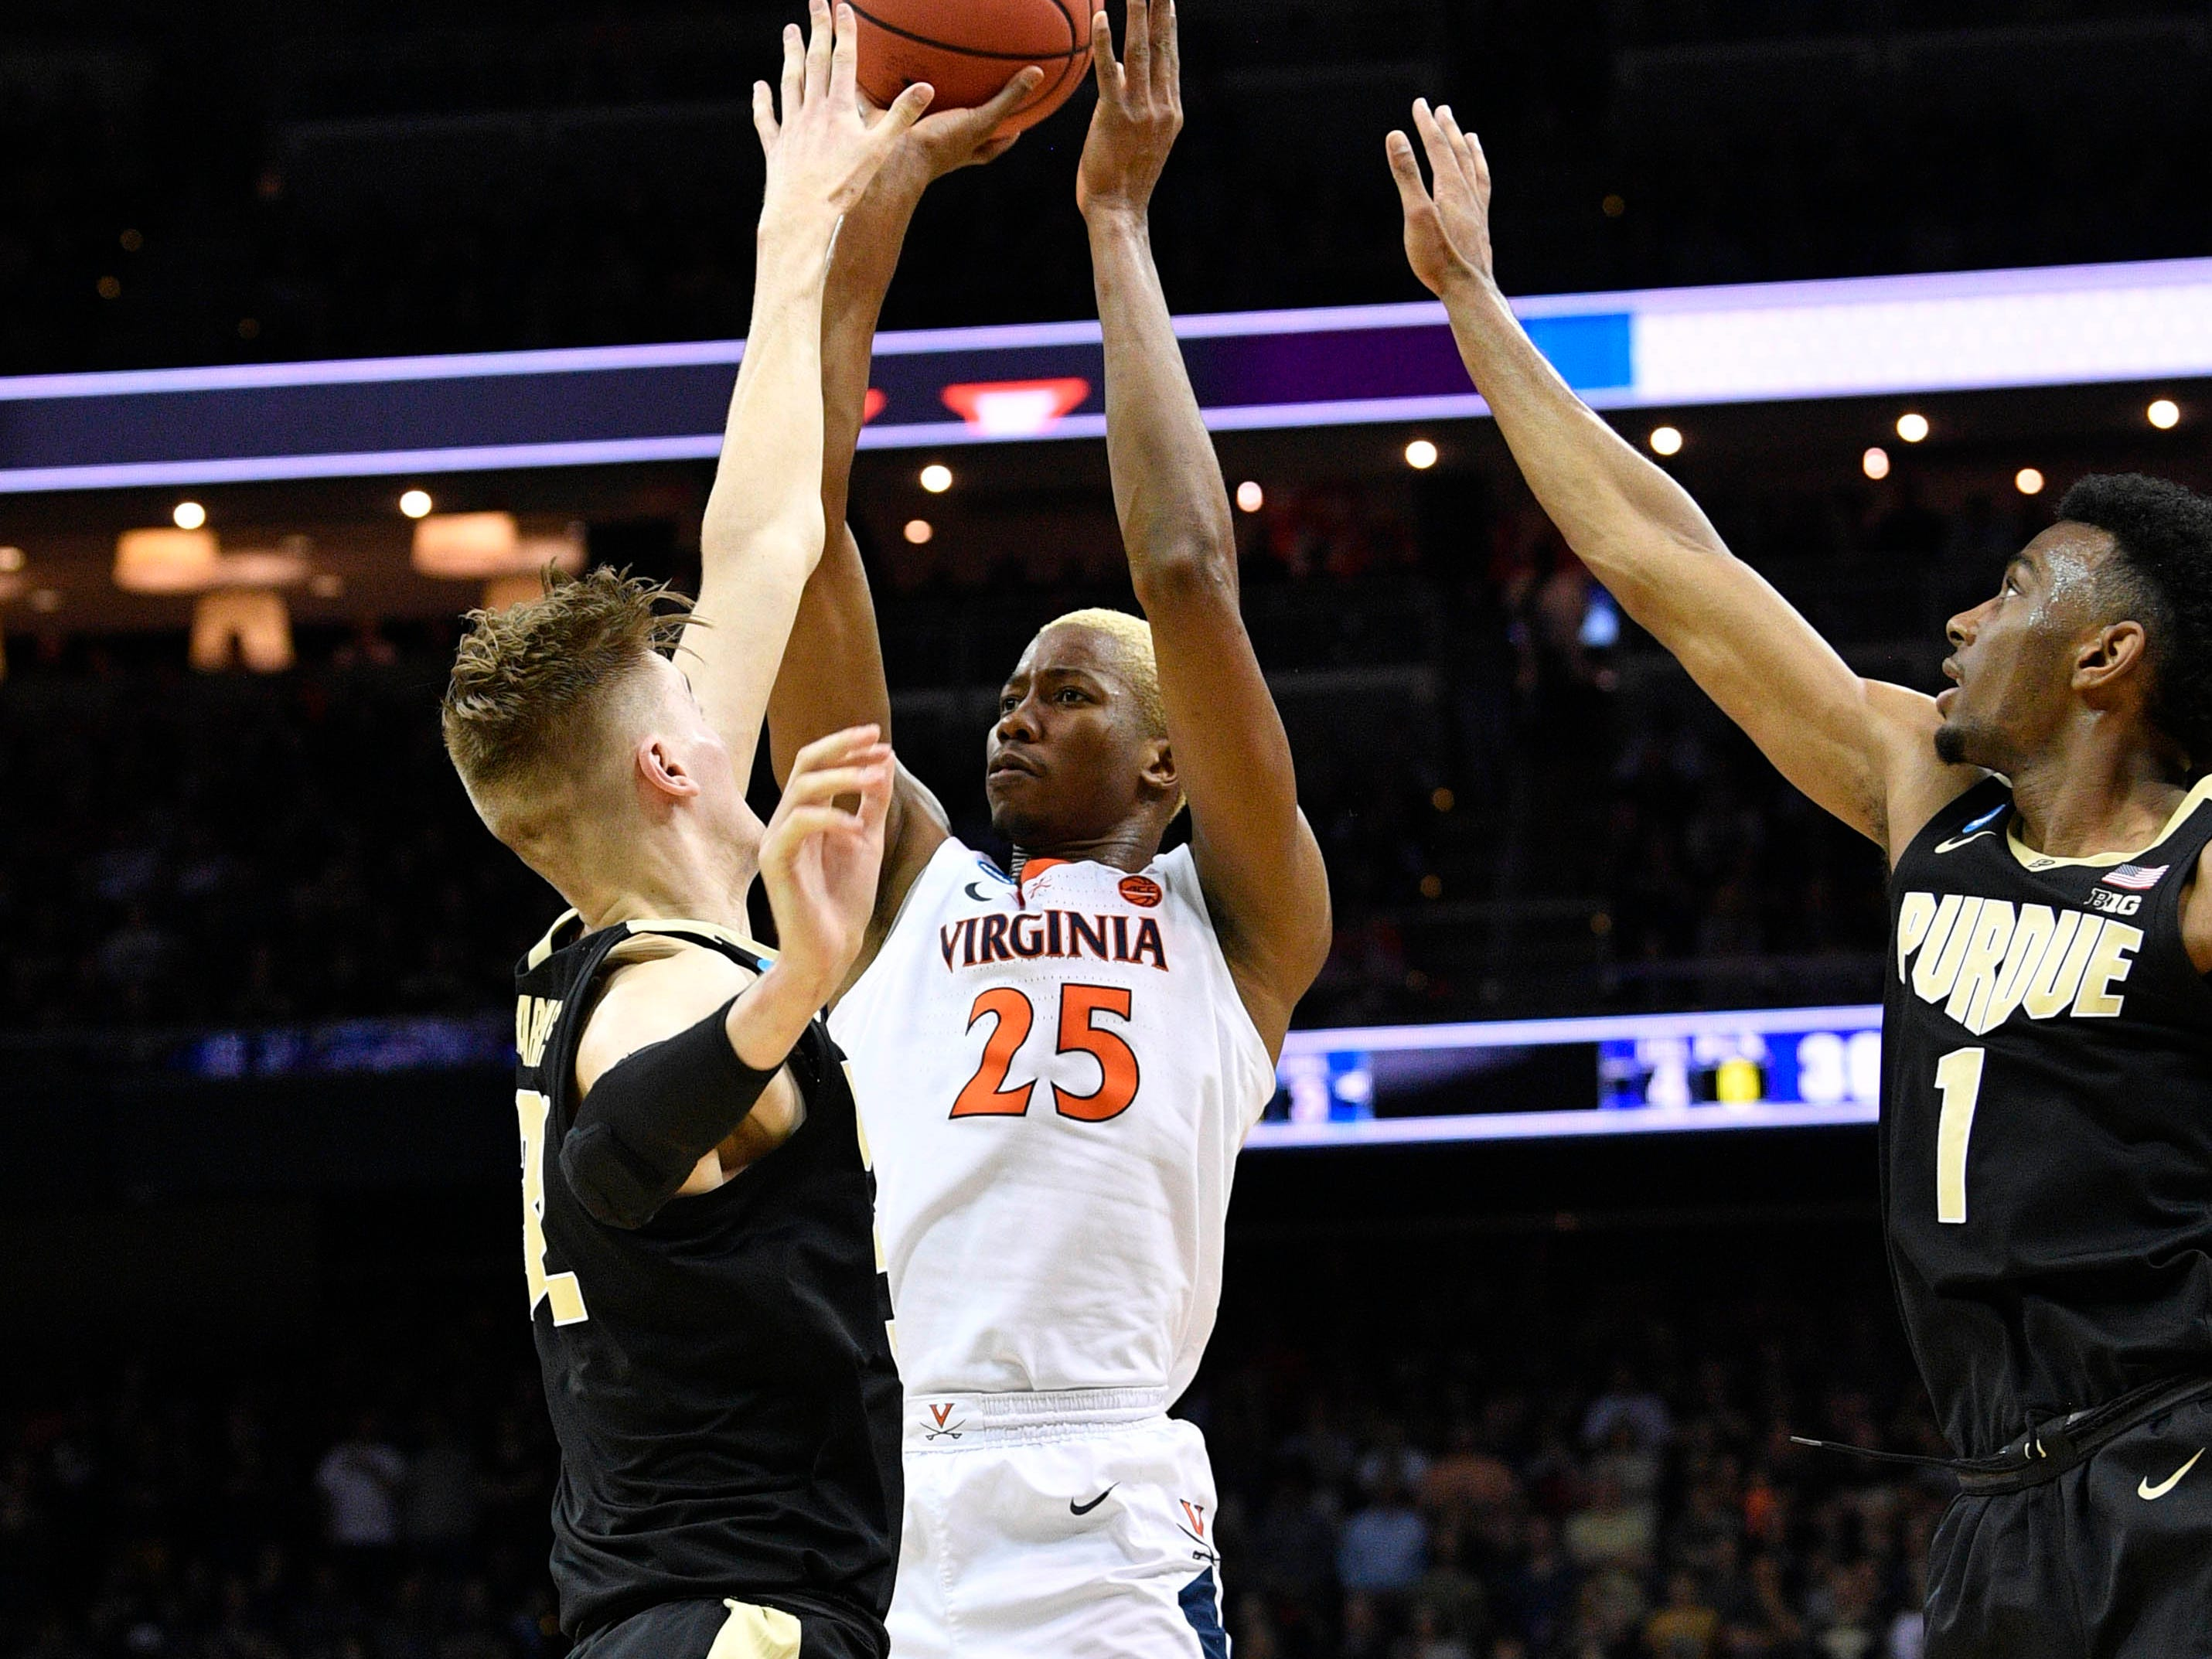 Mar 30, 2019; Louisville, KY, United States; Virginia Cavaliers forward Mamadi Diakite (25) shoots as Purdue Boilermakers center Matt Haarms (32) and forward Aaron Wheeler (1) defend during the first half in the championship game of the south regional of the 2019 NCAA Tournament at KFC Yum Center. Mandatory Credit: Jamie Rhodes-USA TODAY Sports